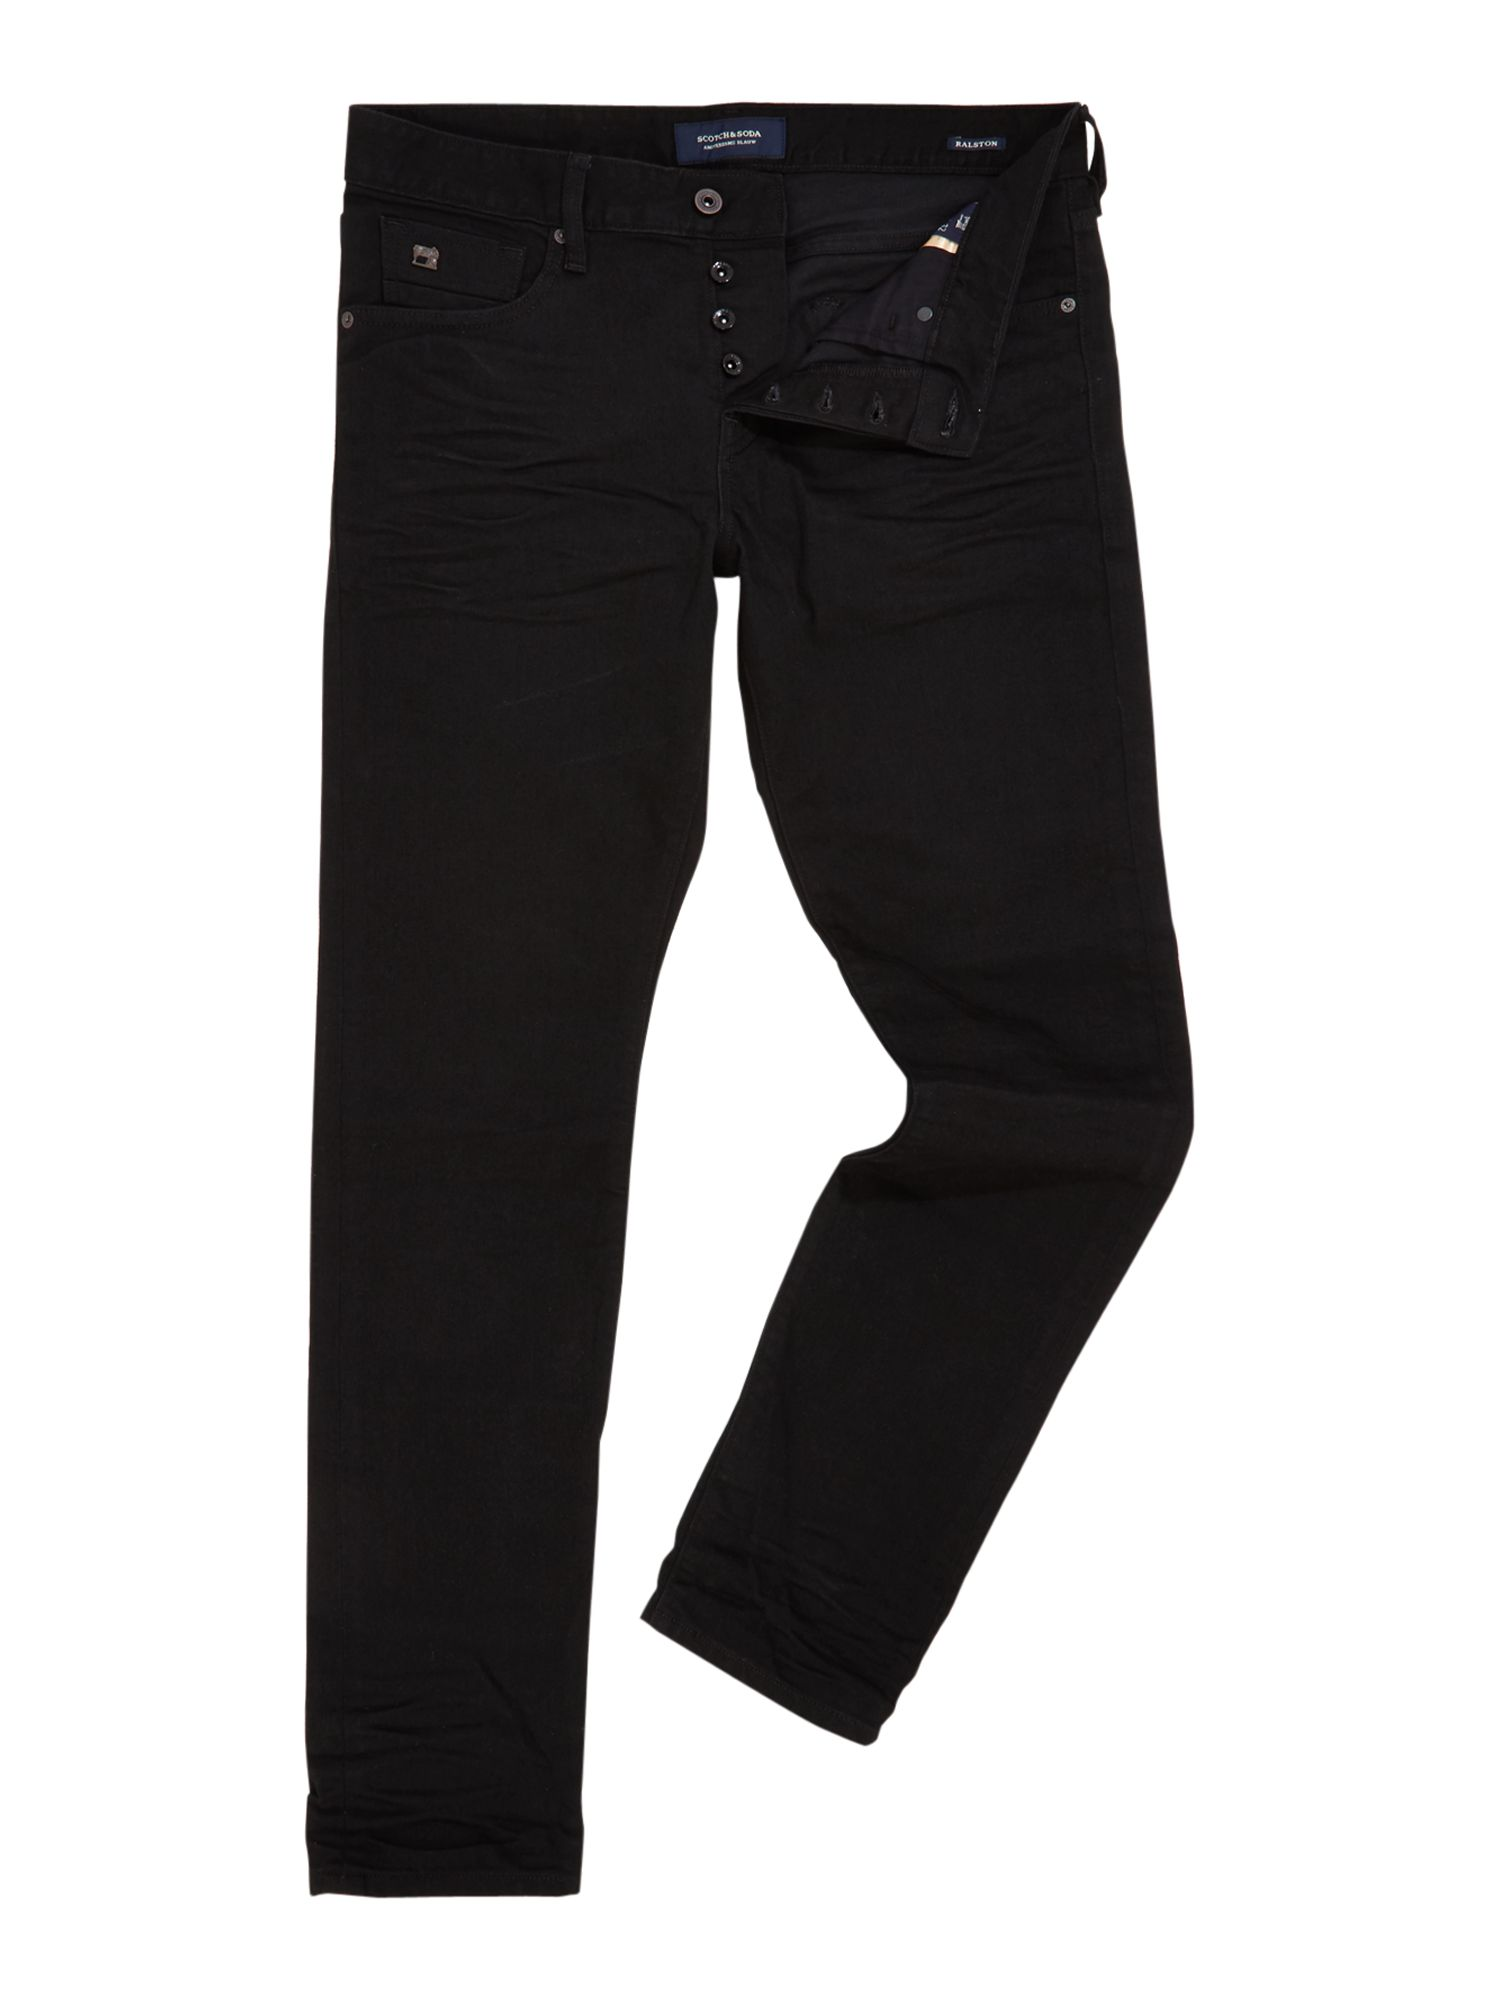 Mens Ralston Jeans  Stay Black, Black